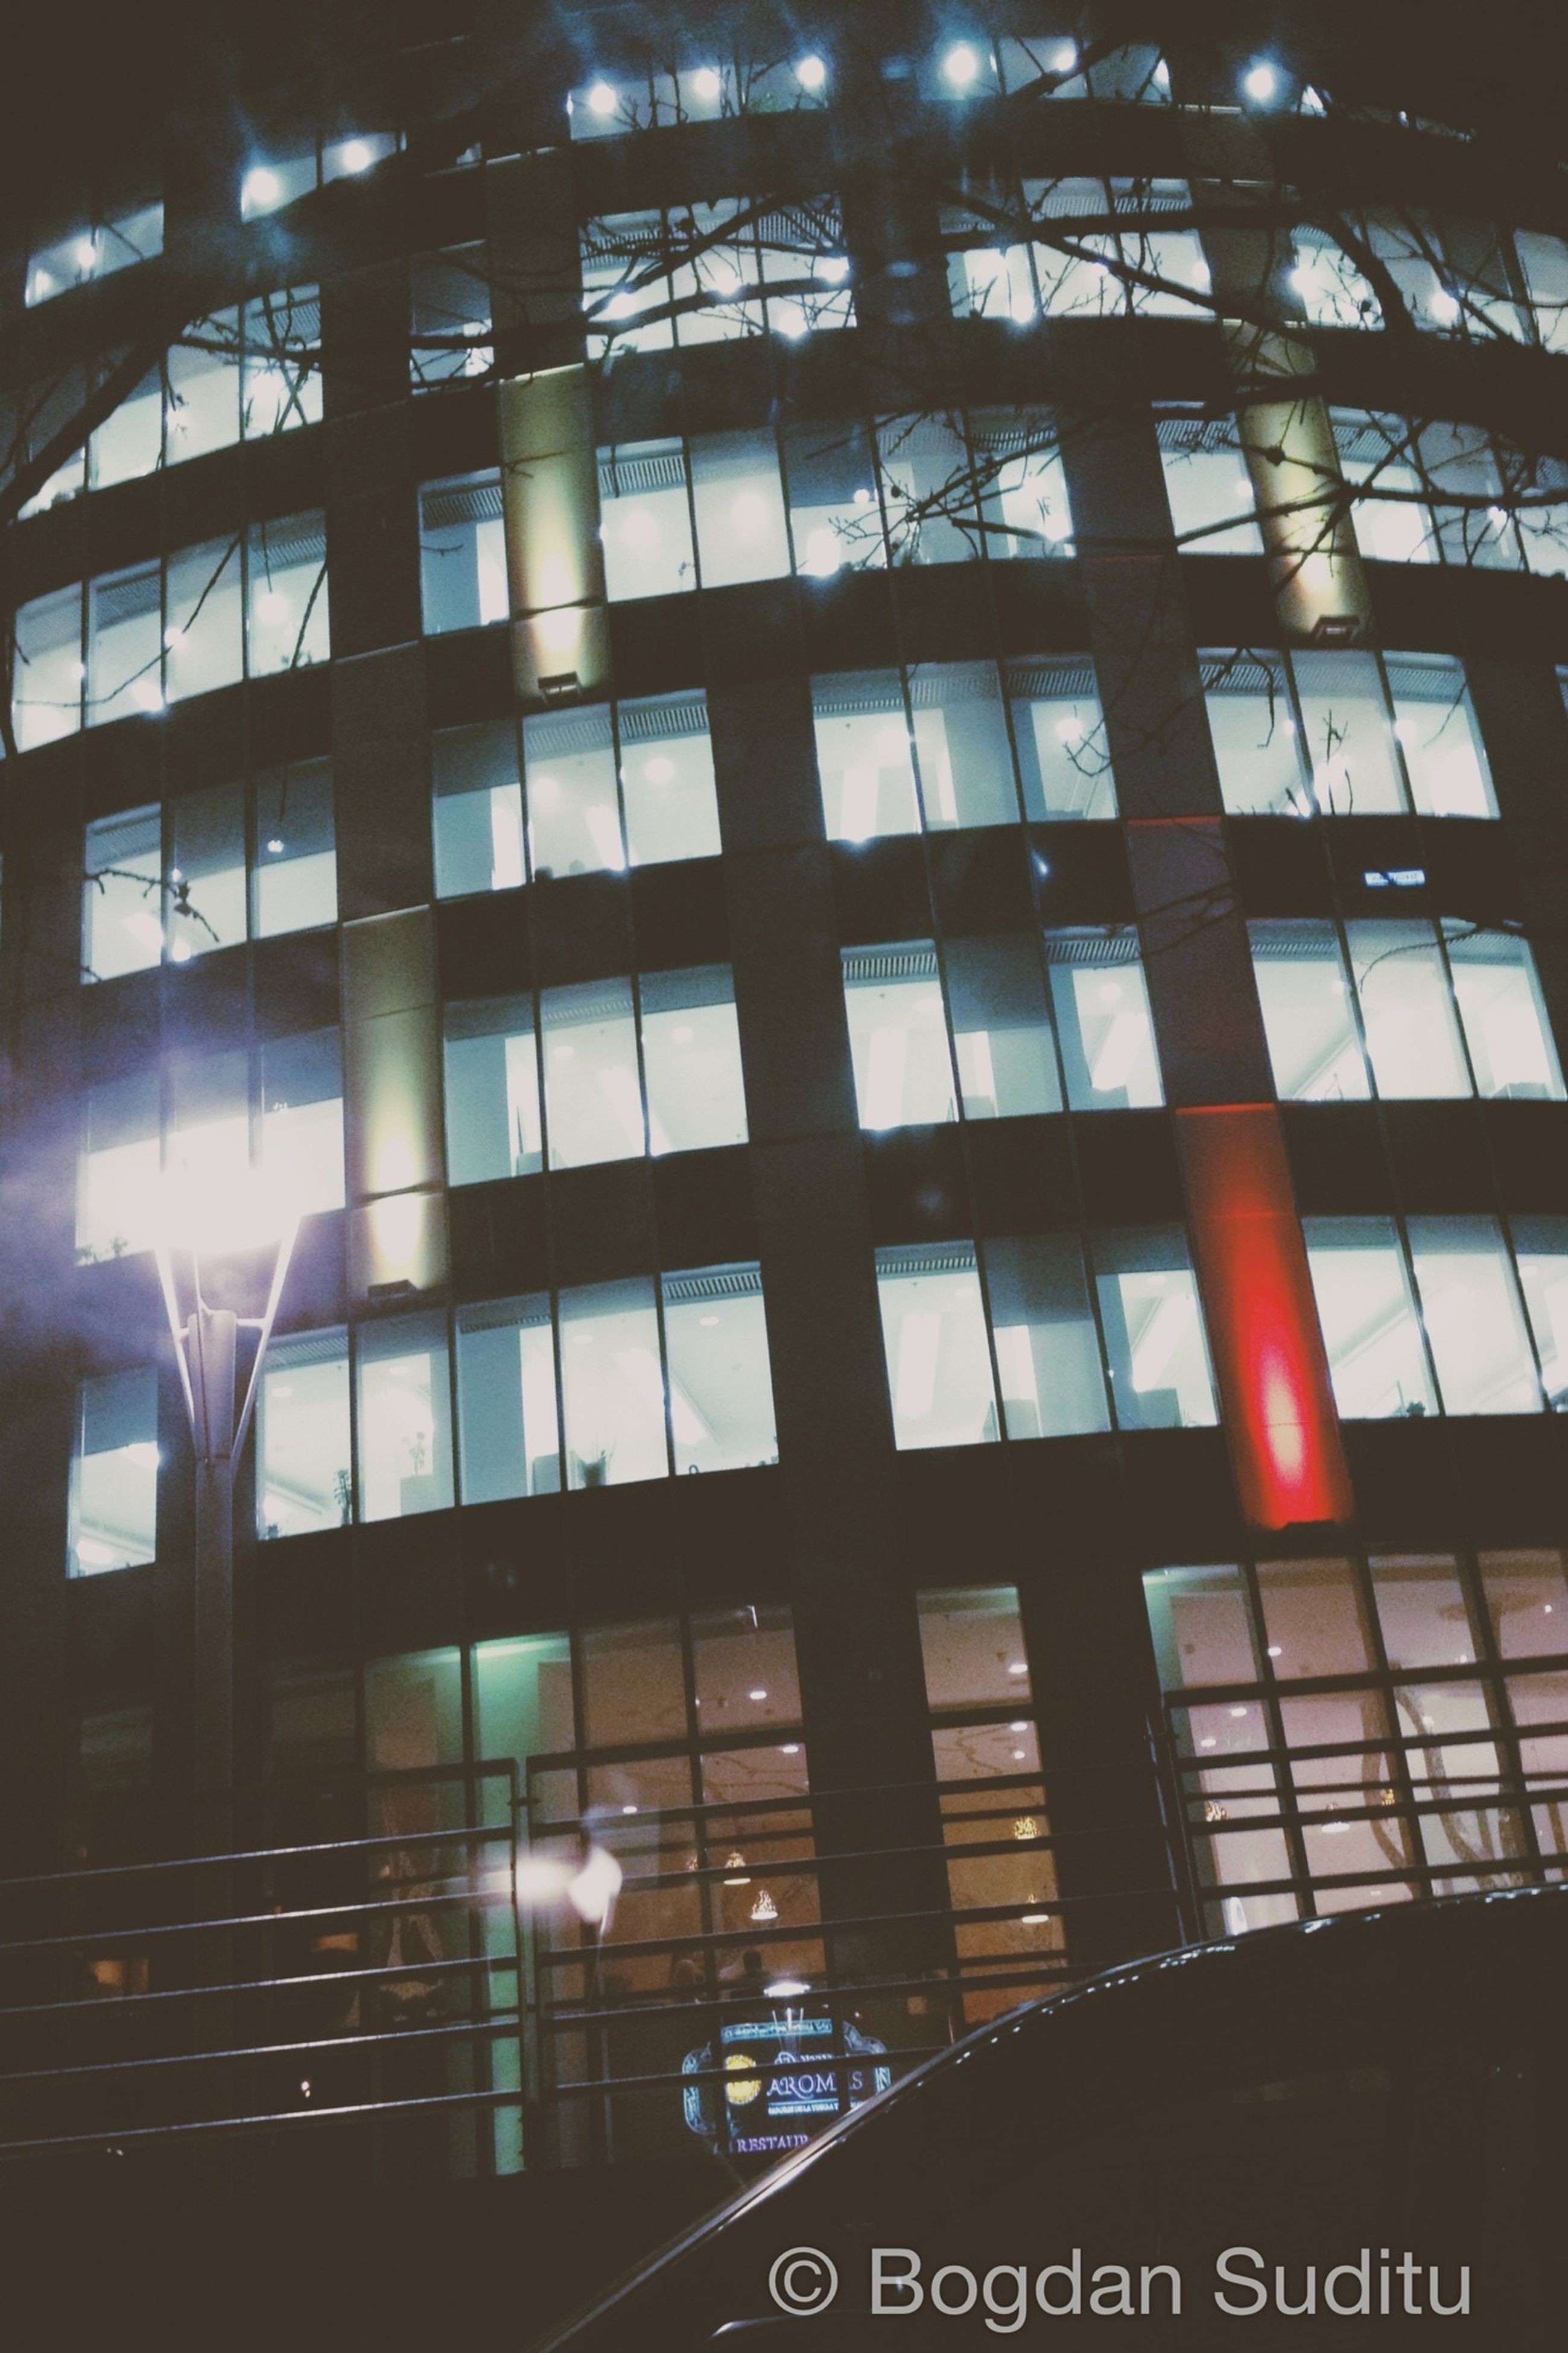 architecture, built structure, illuminated, low angle view, window, building exterior, glass - material, modern, indoors, building, city, reflection, office building, night, no people, text, pattern, transparent, sunlight, architectural feature